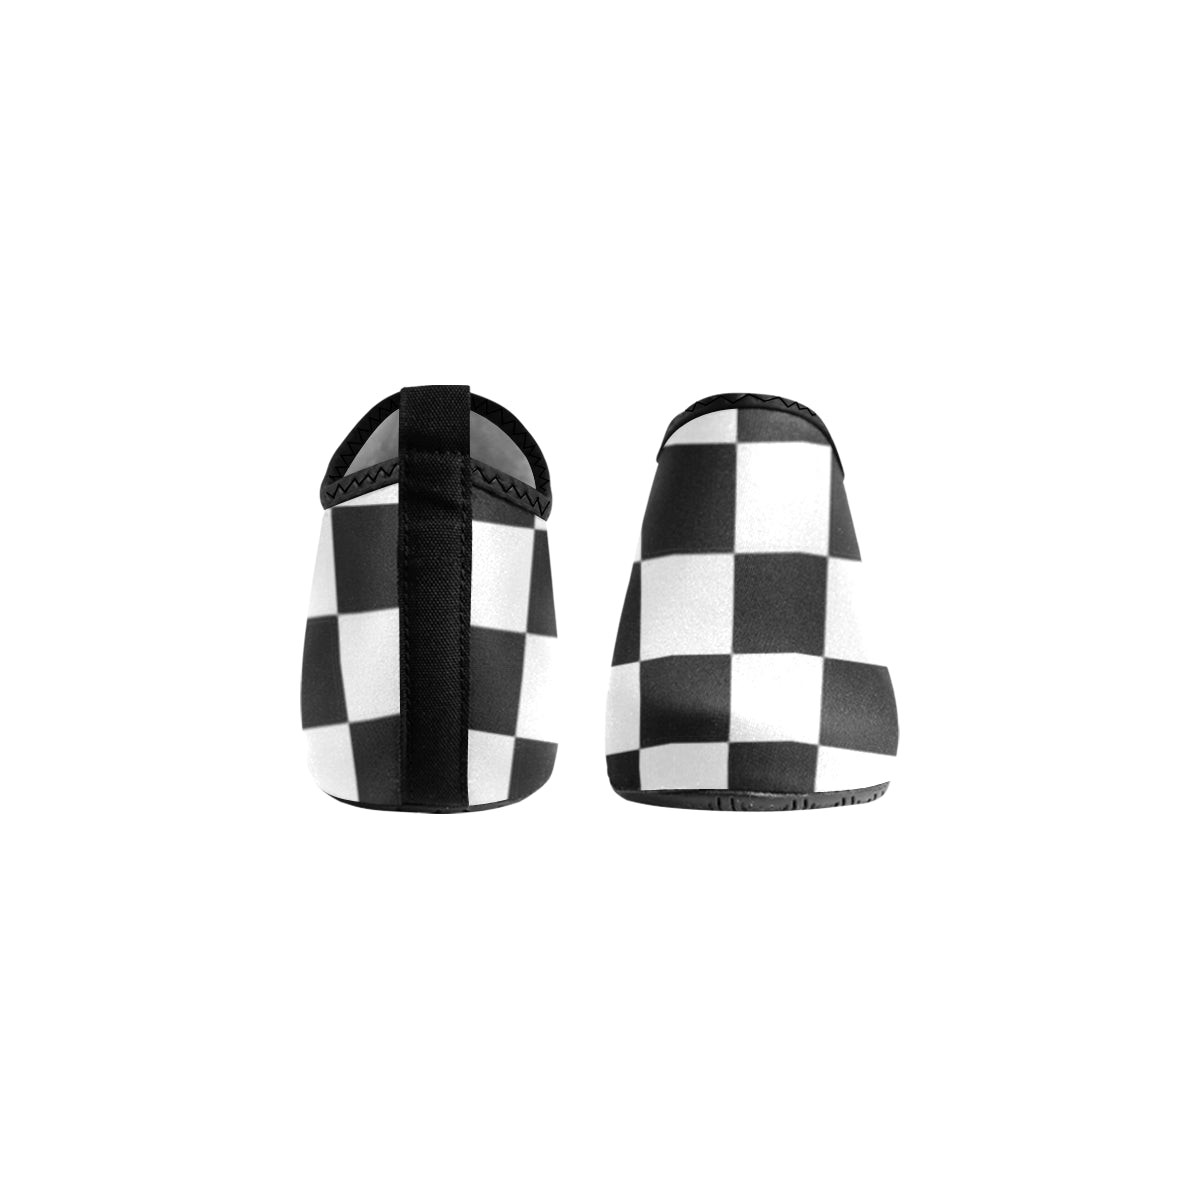 WddR Hydro1 Checkered Slip-On Shoes